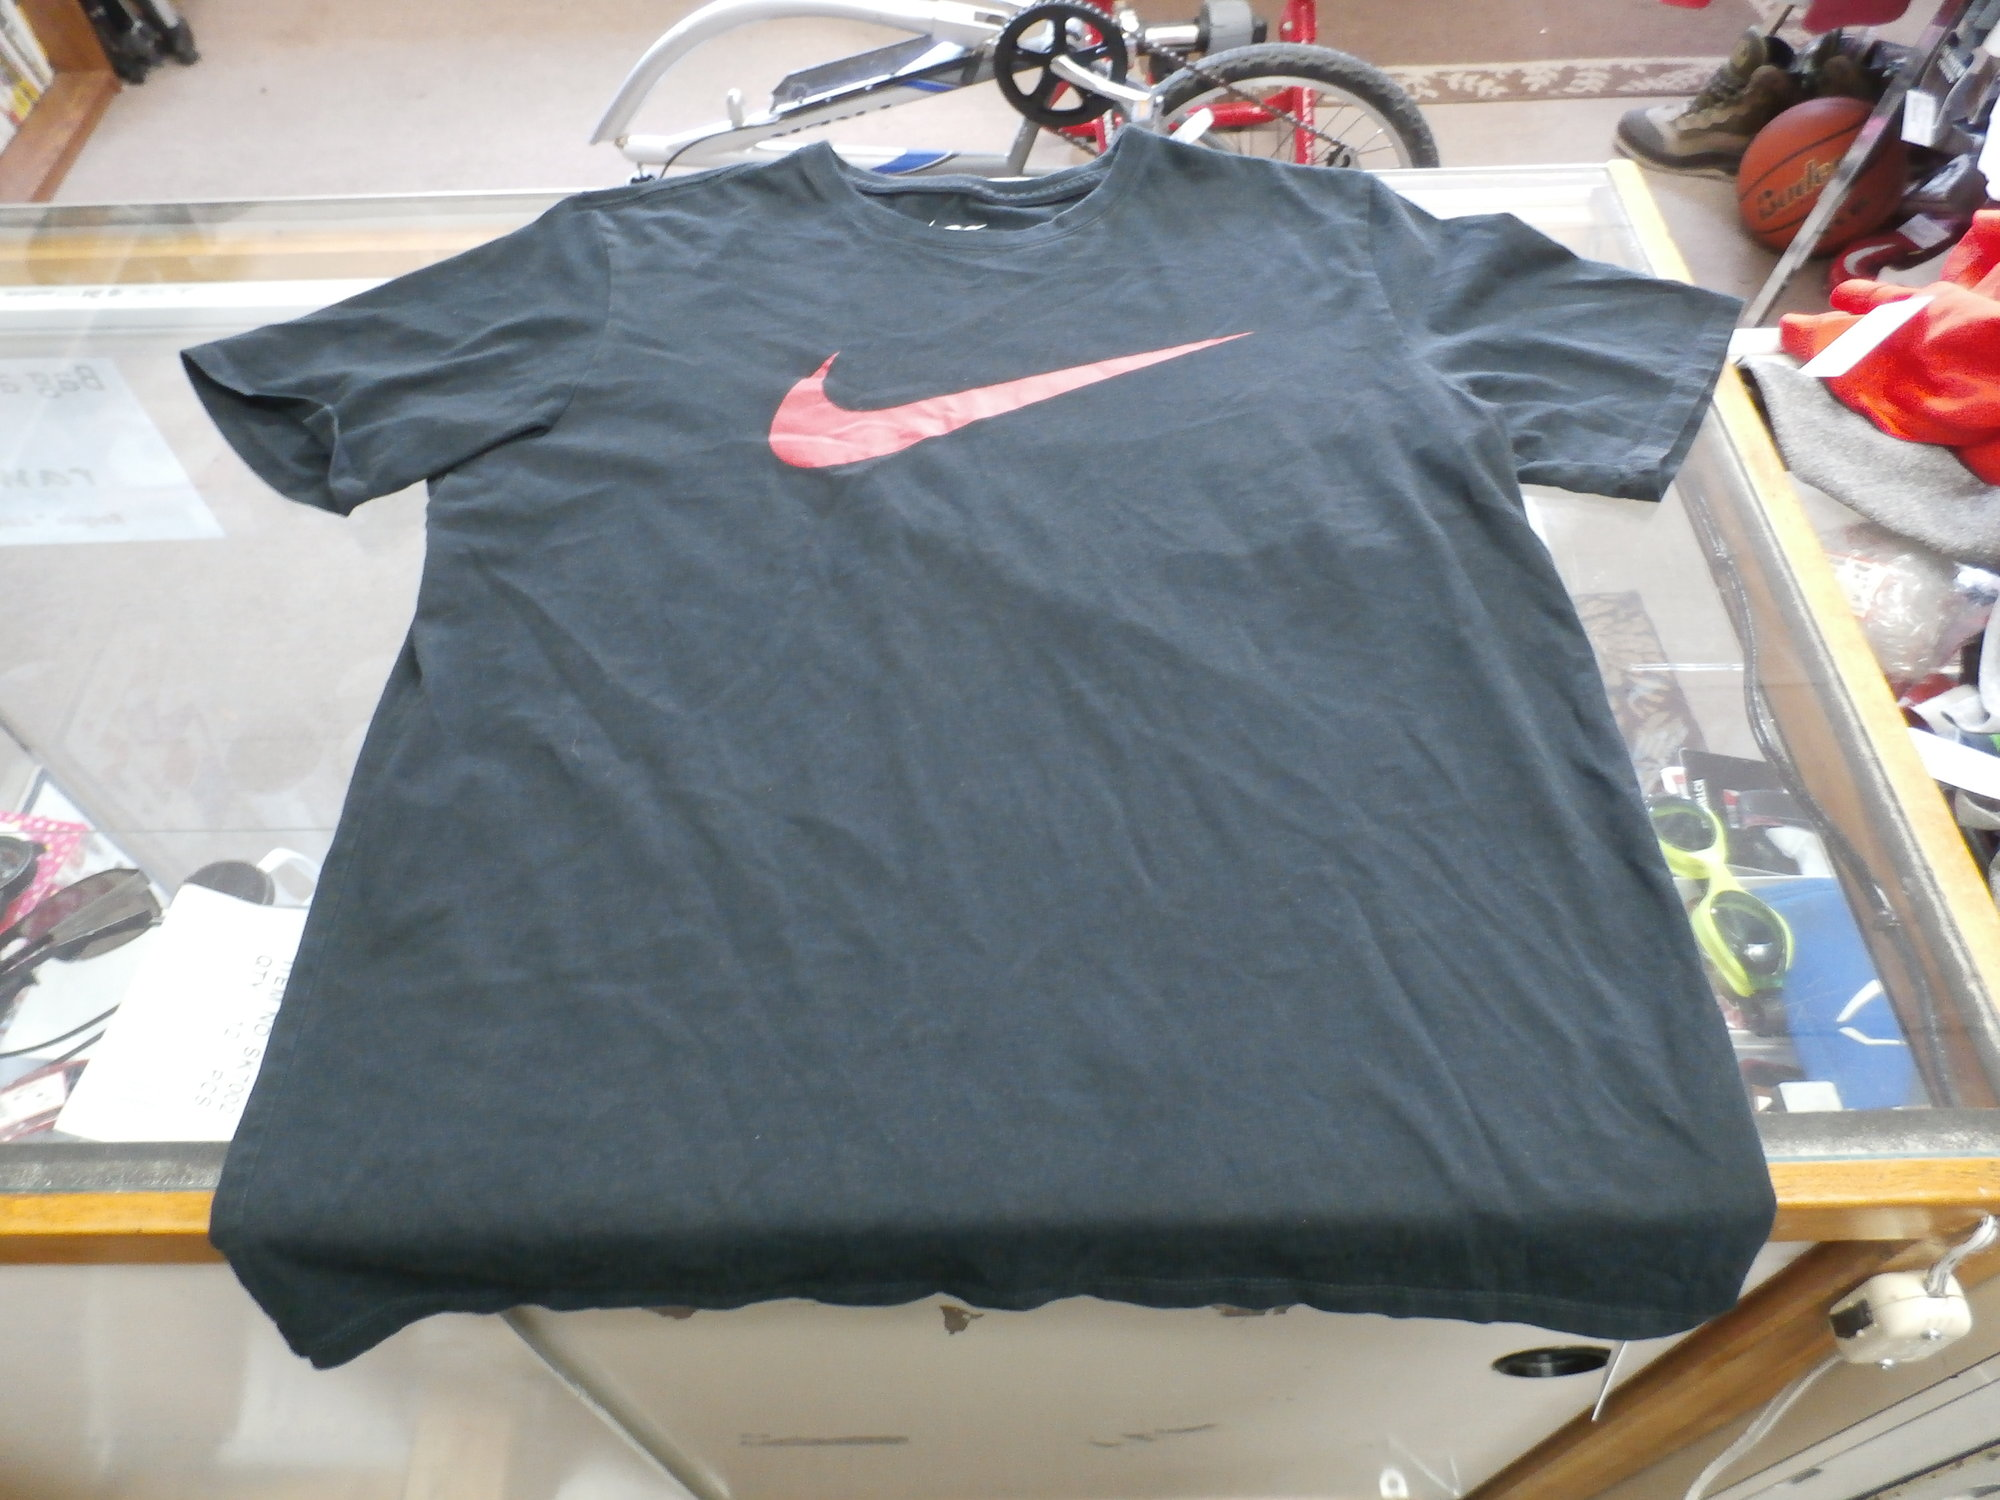 The Nike Tee Men&#039;s Athletic Cut Short Sleeve Shirt Size Large Black Cotton#25366<br /> Rating:   (see below) 3 - Good Condition<br /> Team: n/a<br /> Player: n/a<br /> Brand: Nike<br /> Size: Large - Men&#039;s(Measured Flat: Across chest 20&quot;, length 26&quot;)<br /> Measured flat: arm pit to arm pit; top of shoulder to the hem<br /> Color: Black<br /> Style: short sleeve screen pressed shirt; Athletic Cut<br /> Material: 100% Cotton<br /> Condition: - Good Condition - wrinkled; material looks and feels good; light pilling and fuzz; normal signs of wear; no stains rips or holes<br /> Item #: 25366<br /> Shipping: FREE